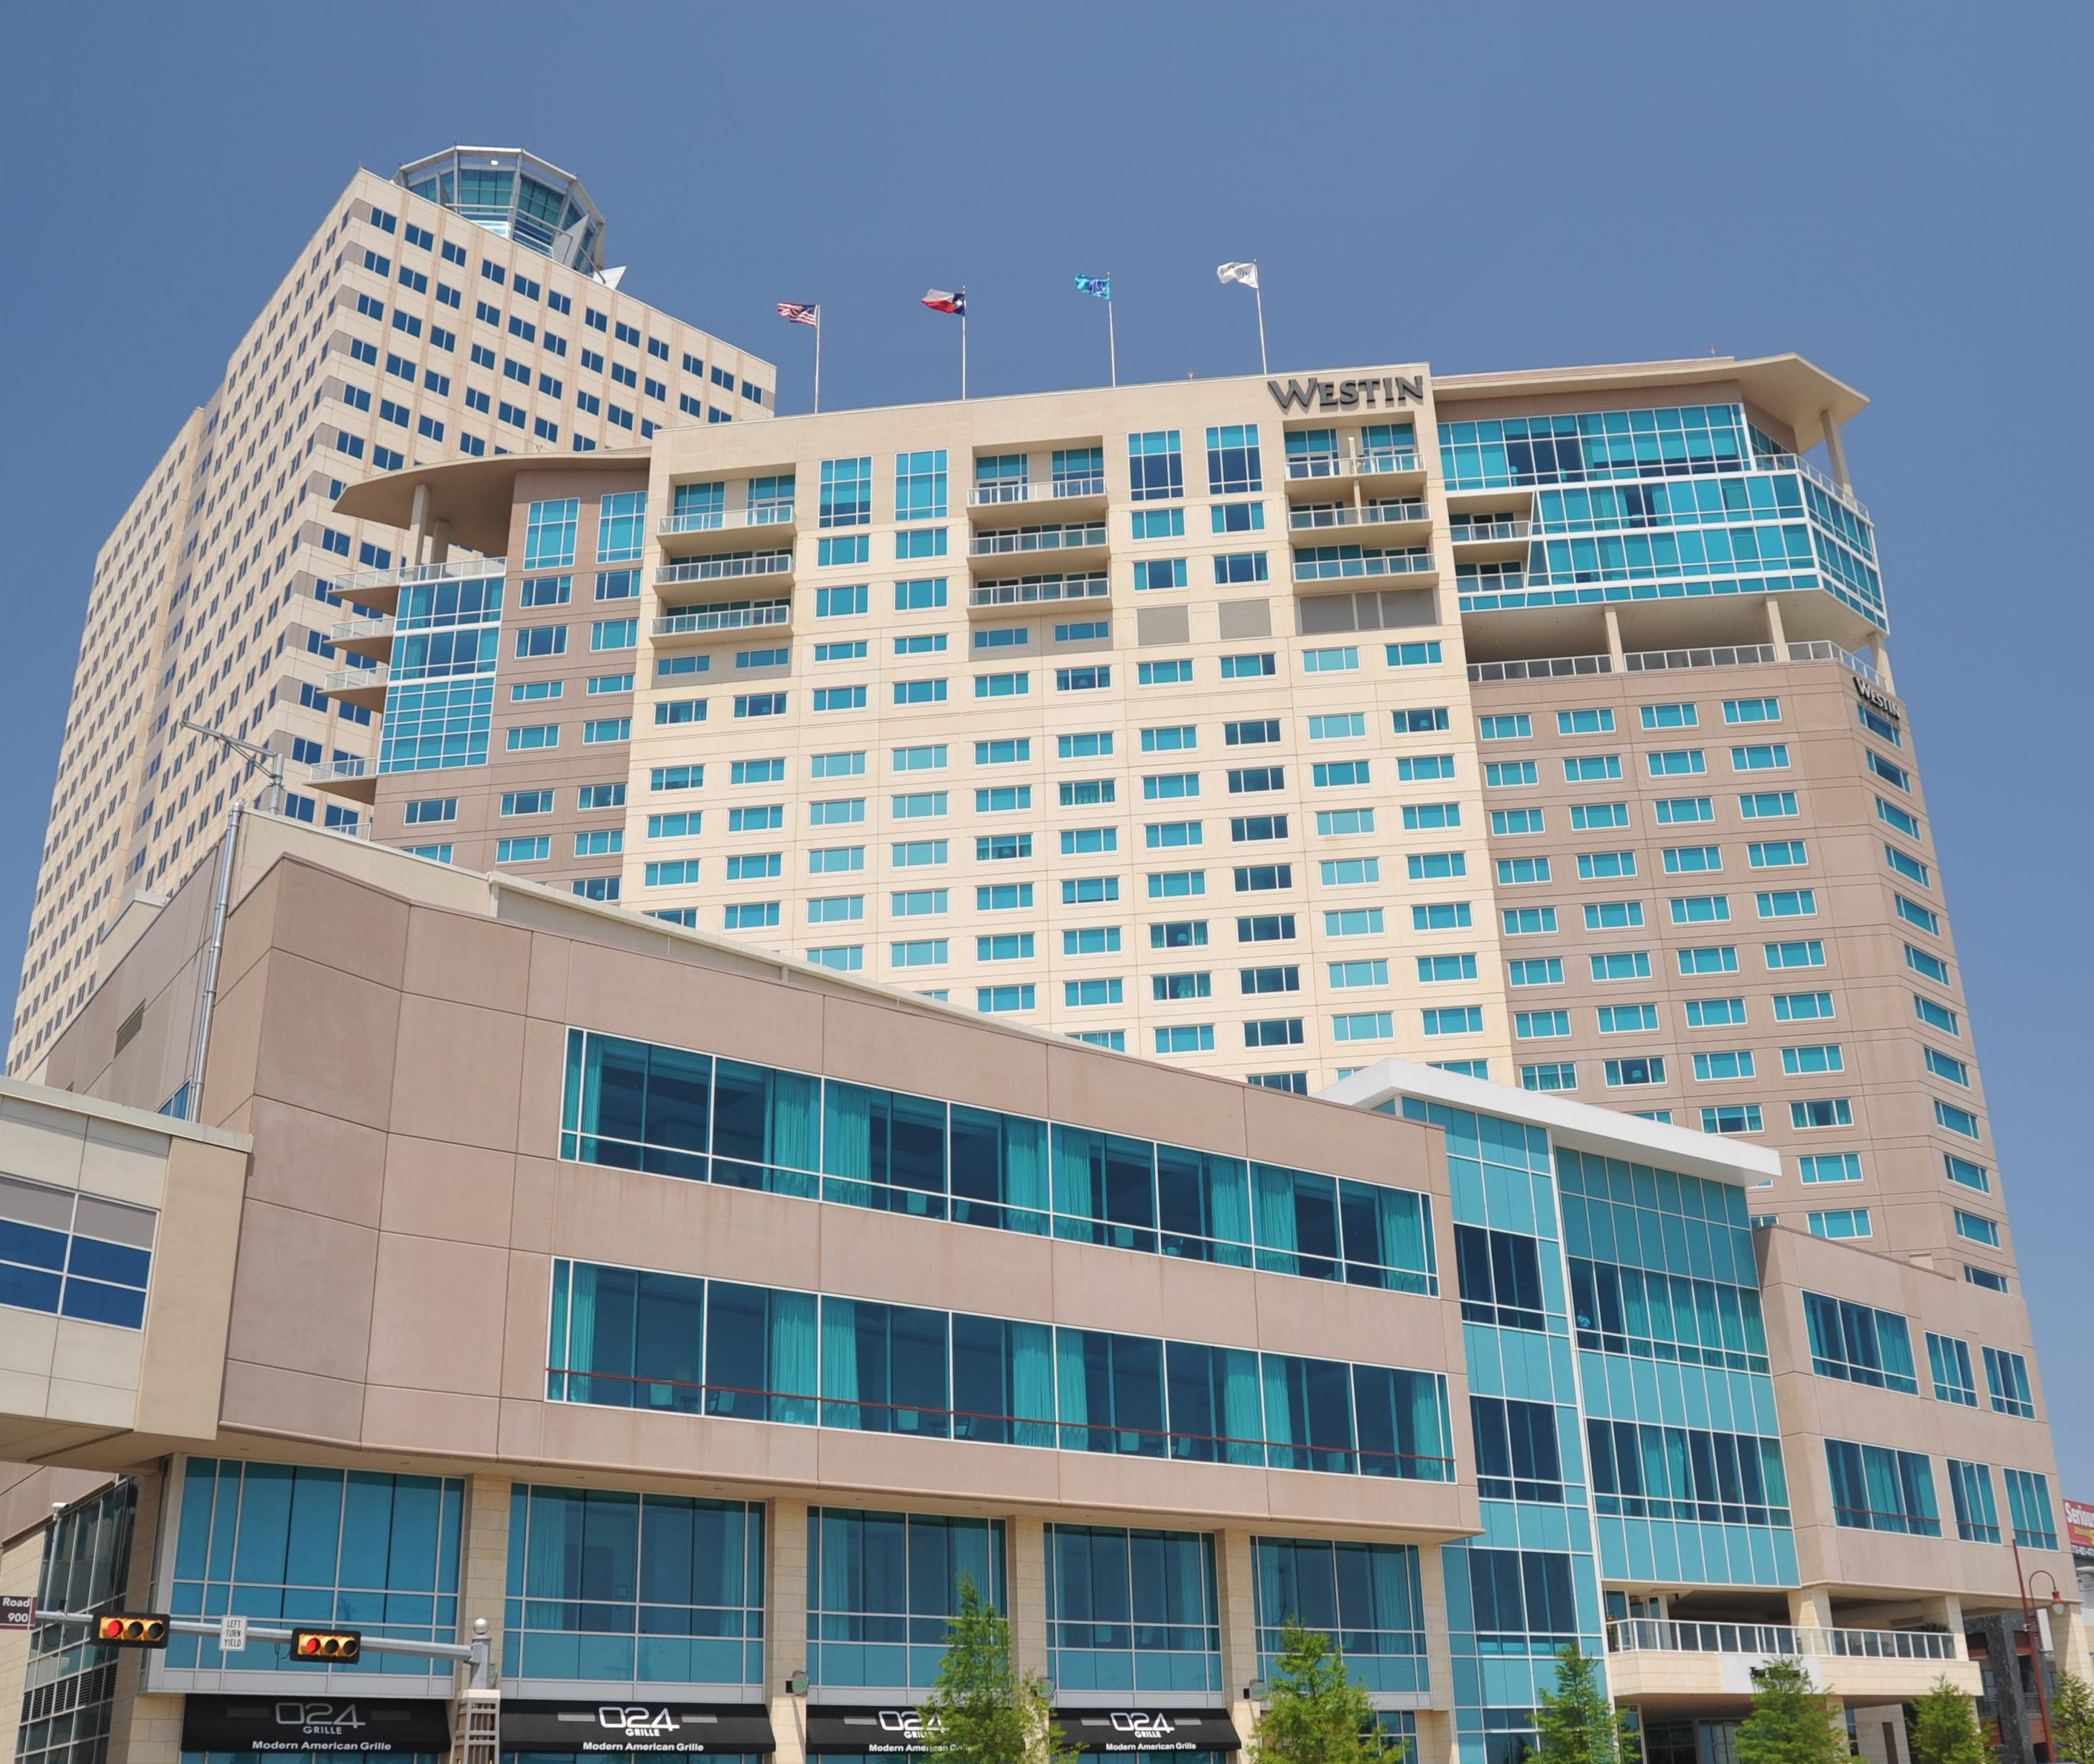 Atlanta Designers Precast Concrete For Hotels And Motels - Coreslab